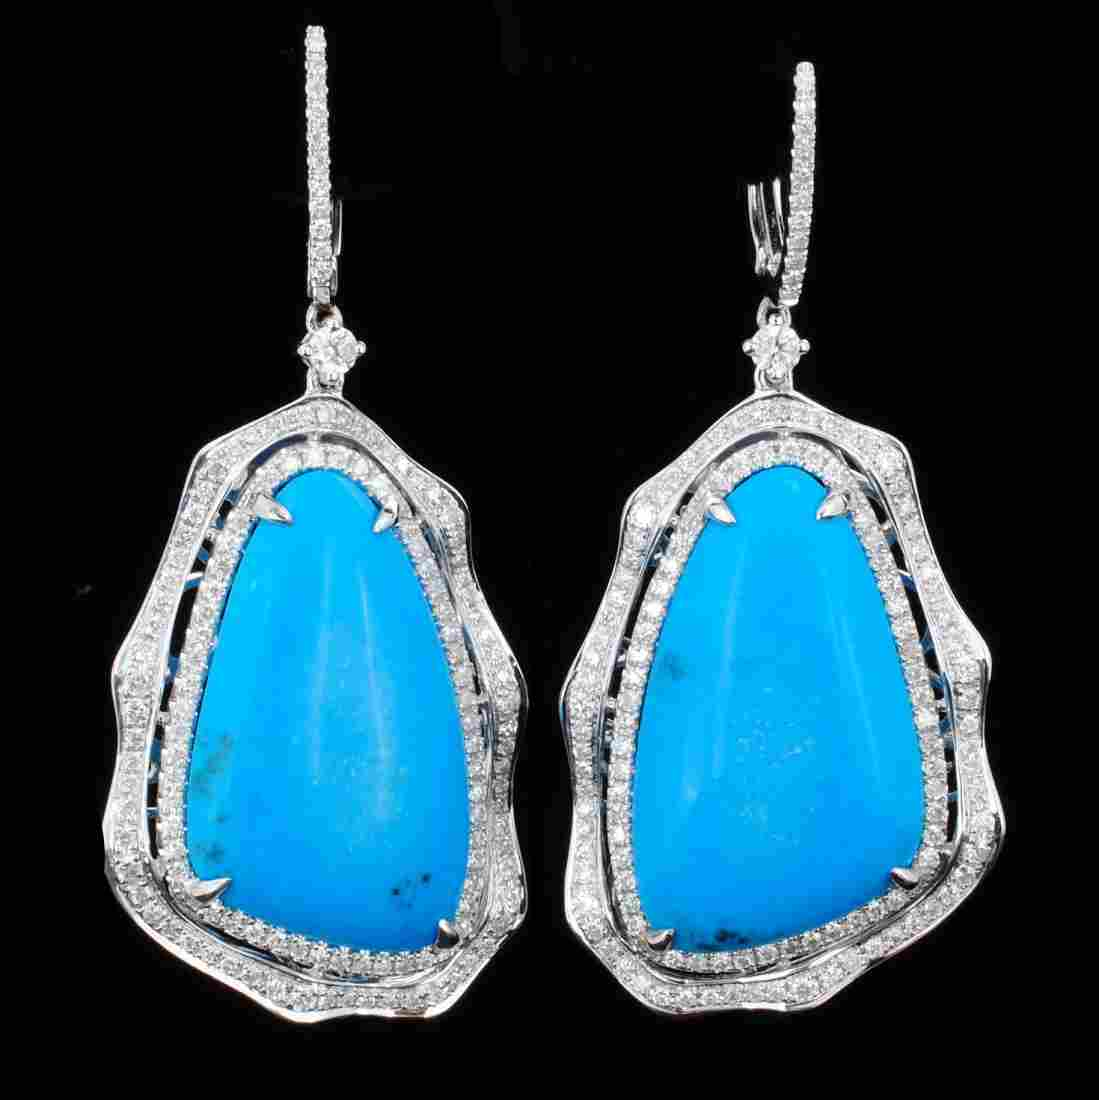 14K Gold 26.40ct Turquoise & 1.48ct Diamond Earrings